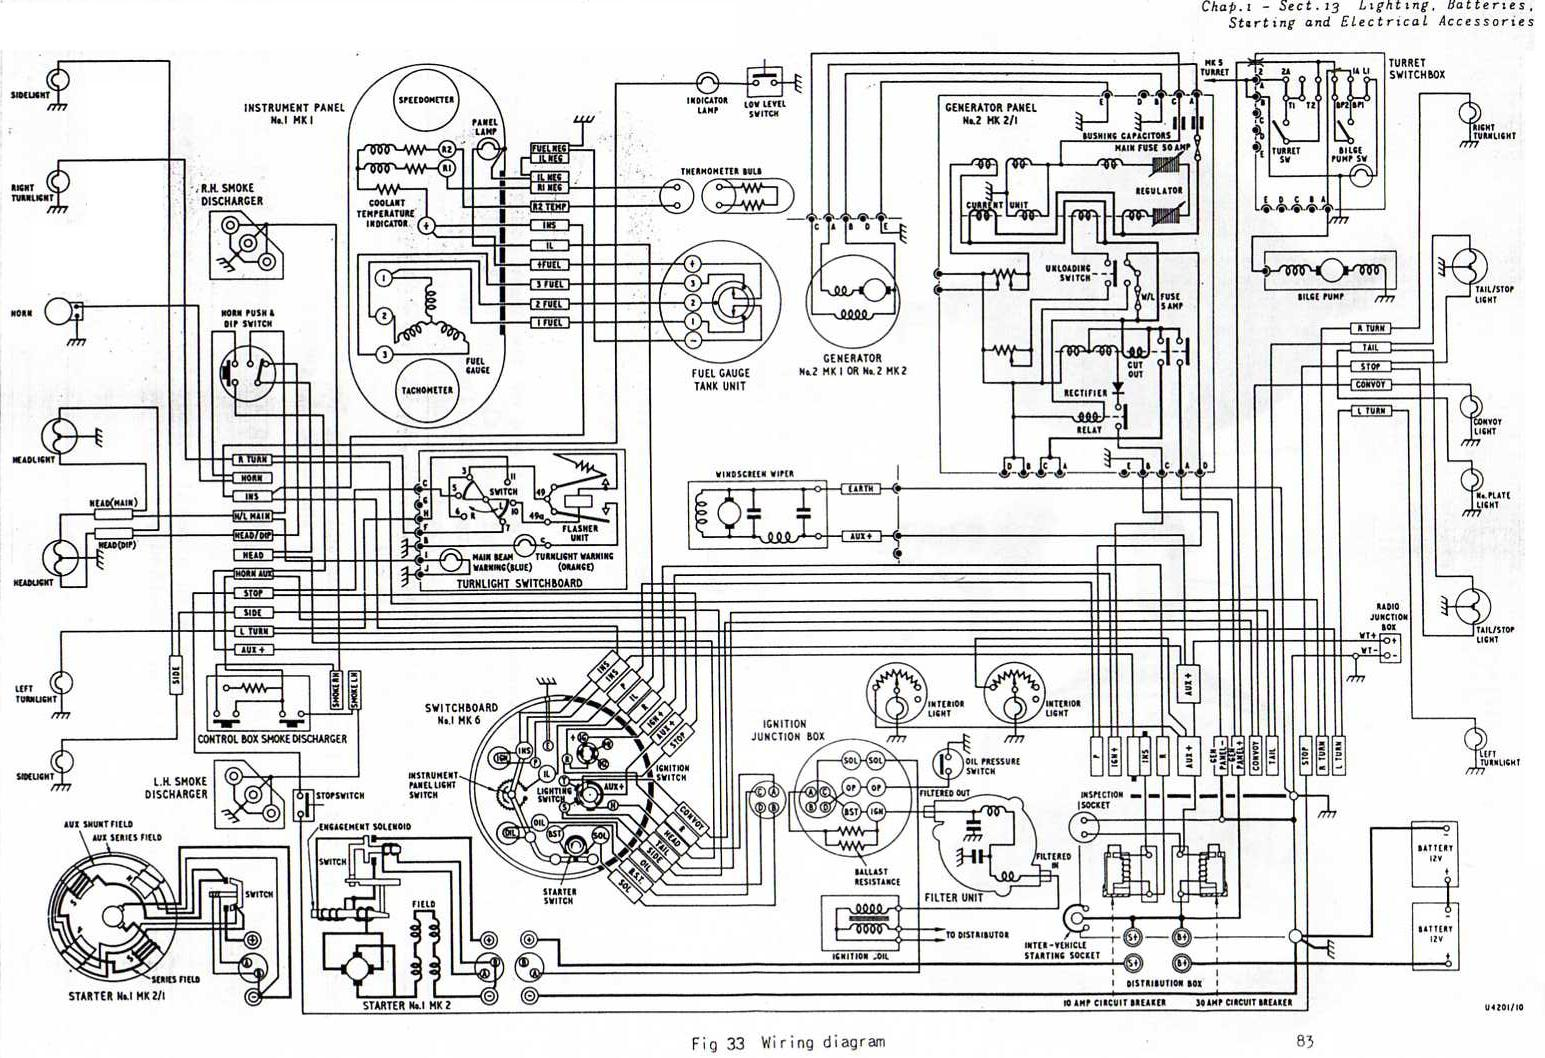 69 mustang heater wiring diagram tridonic t8 ballast camaro dash schematic get free image about